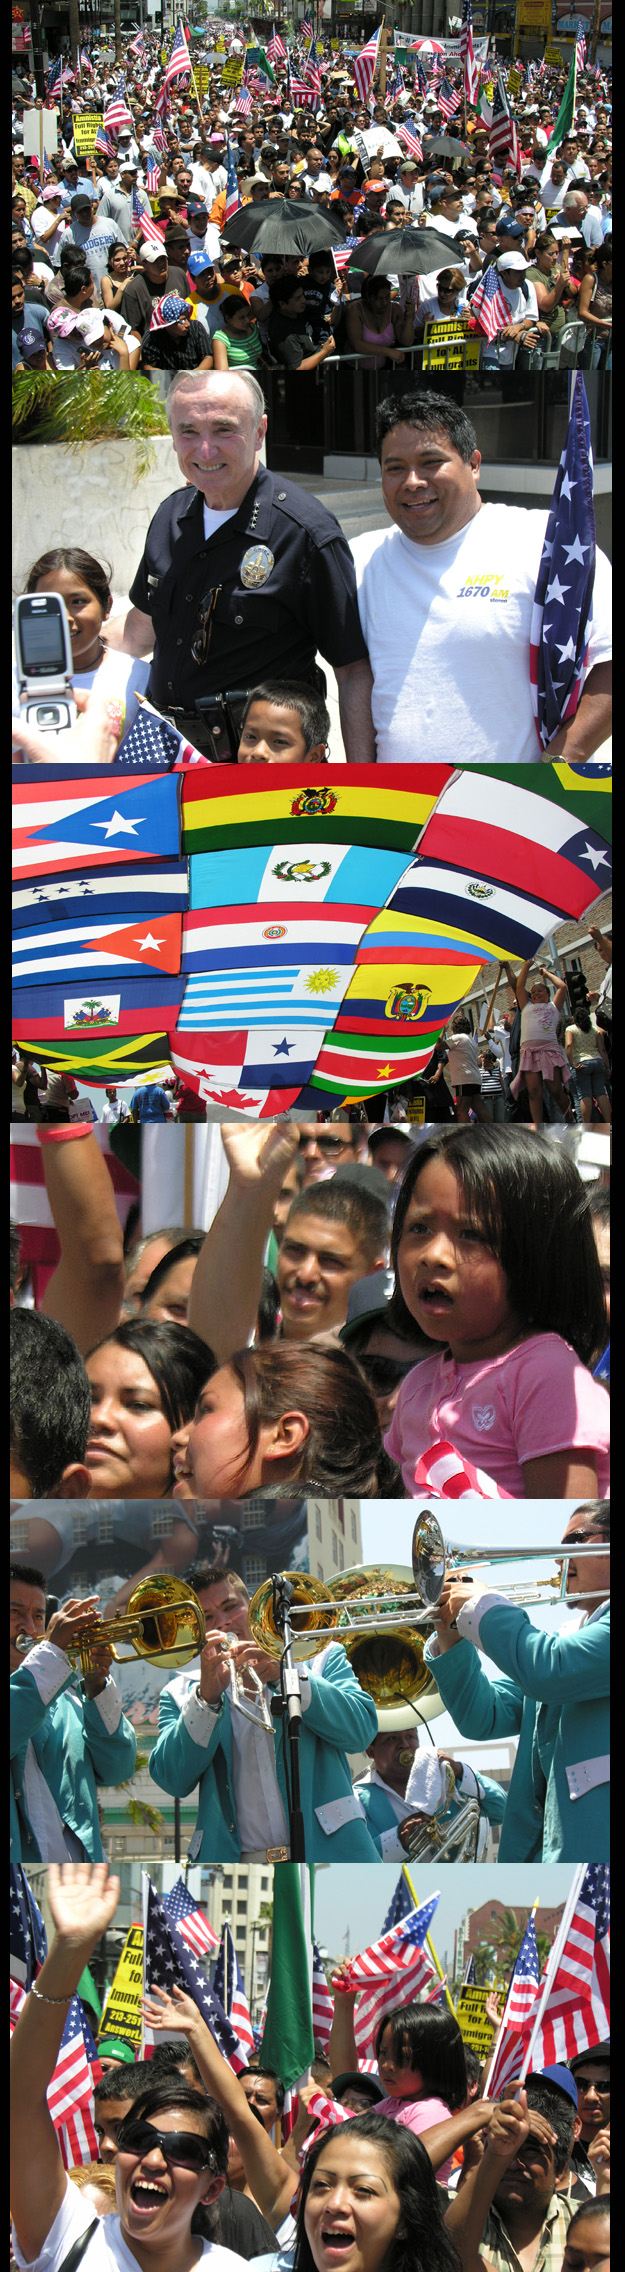 June 24 March-Rally For Immigrants Rights in LA - A Success